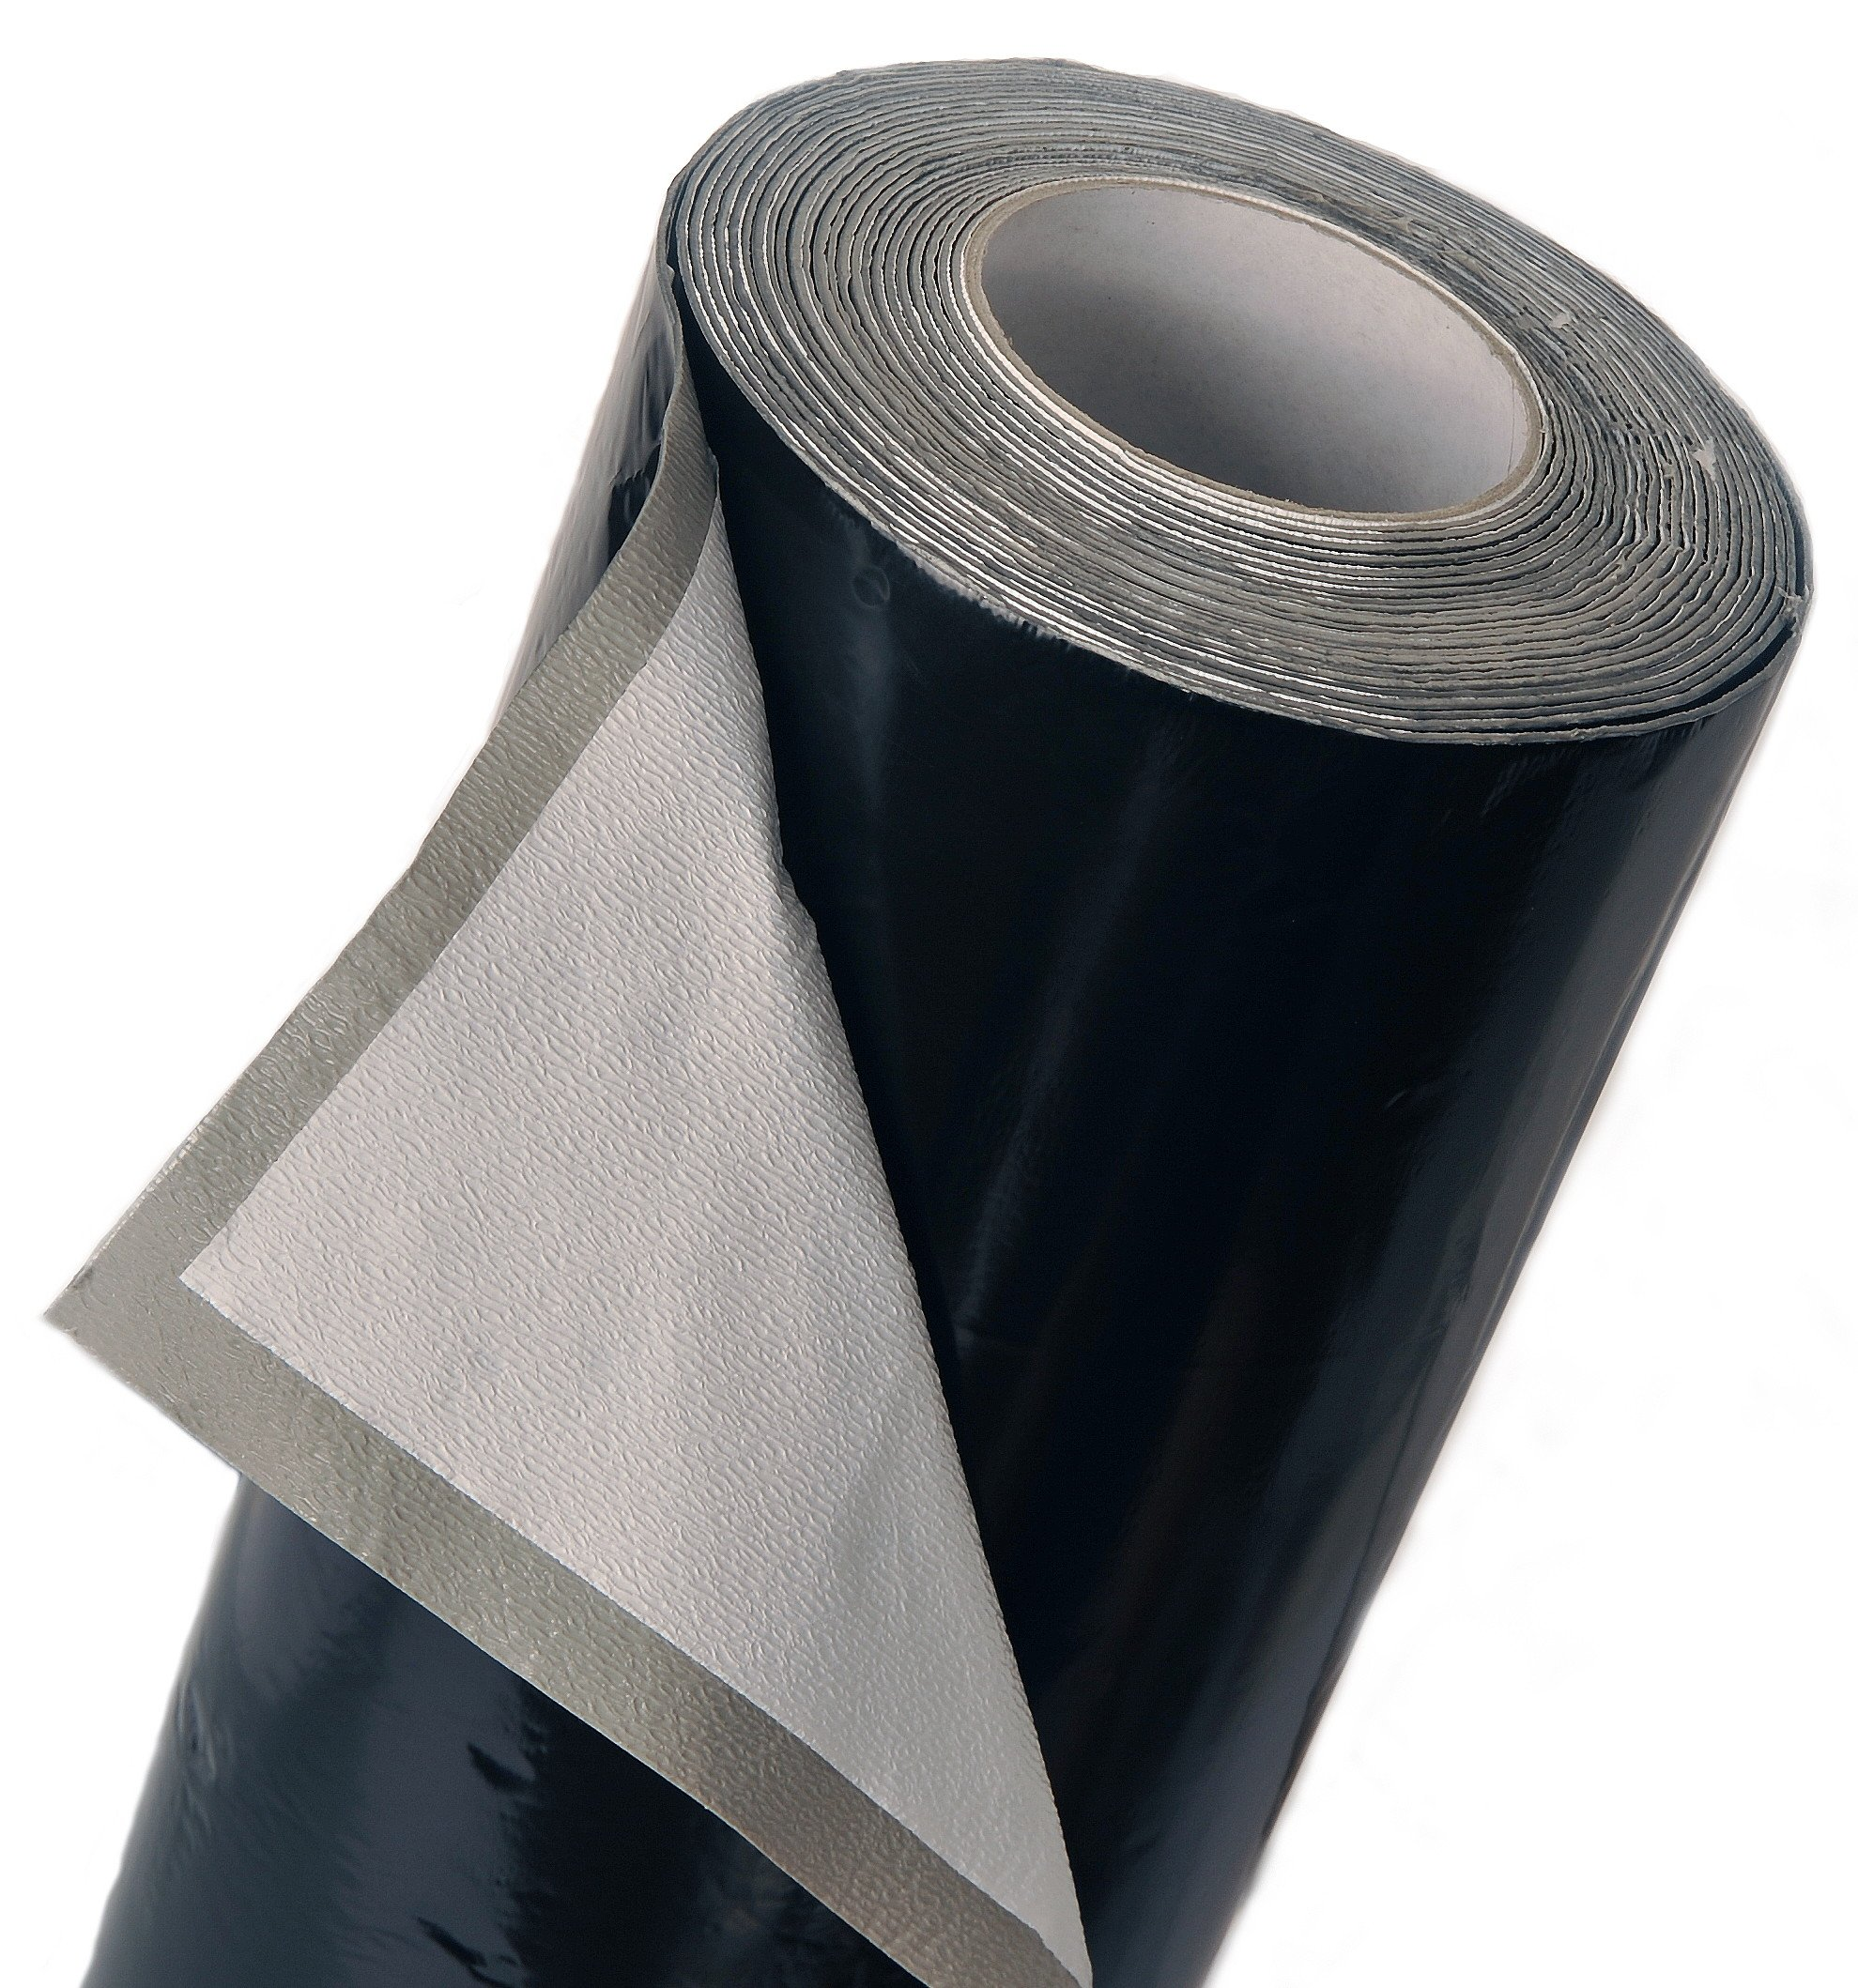 FatMat Self-Adhesive BLACK Butyl MegaMat Sound Deadener Pack with Install Kit - 10 Sq Ft x 70 mil Thick